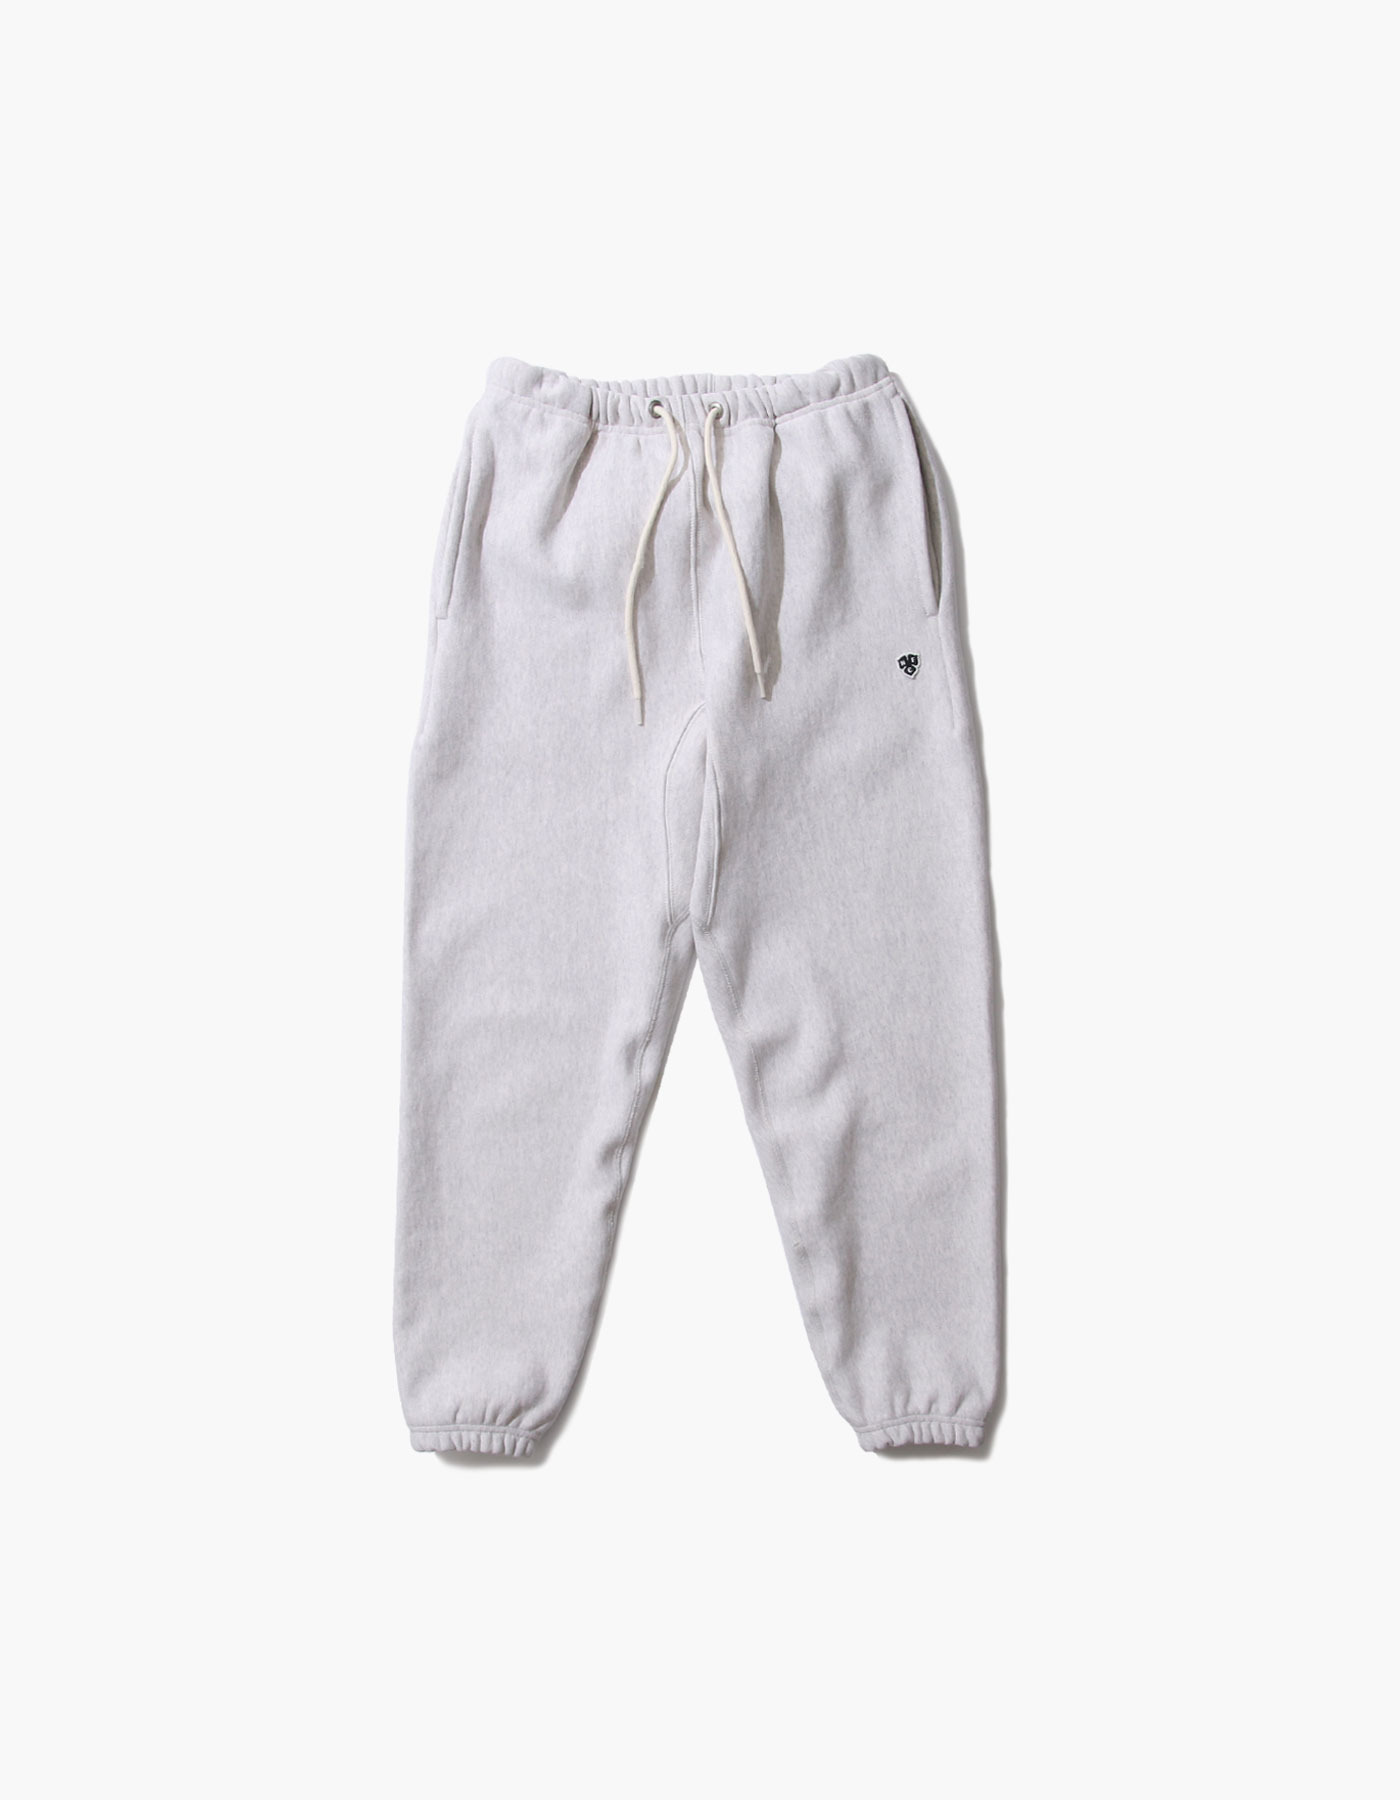 321 GYM SWEATPANTS / M.GREY(1%)